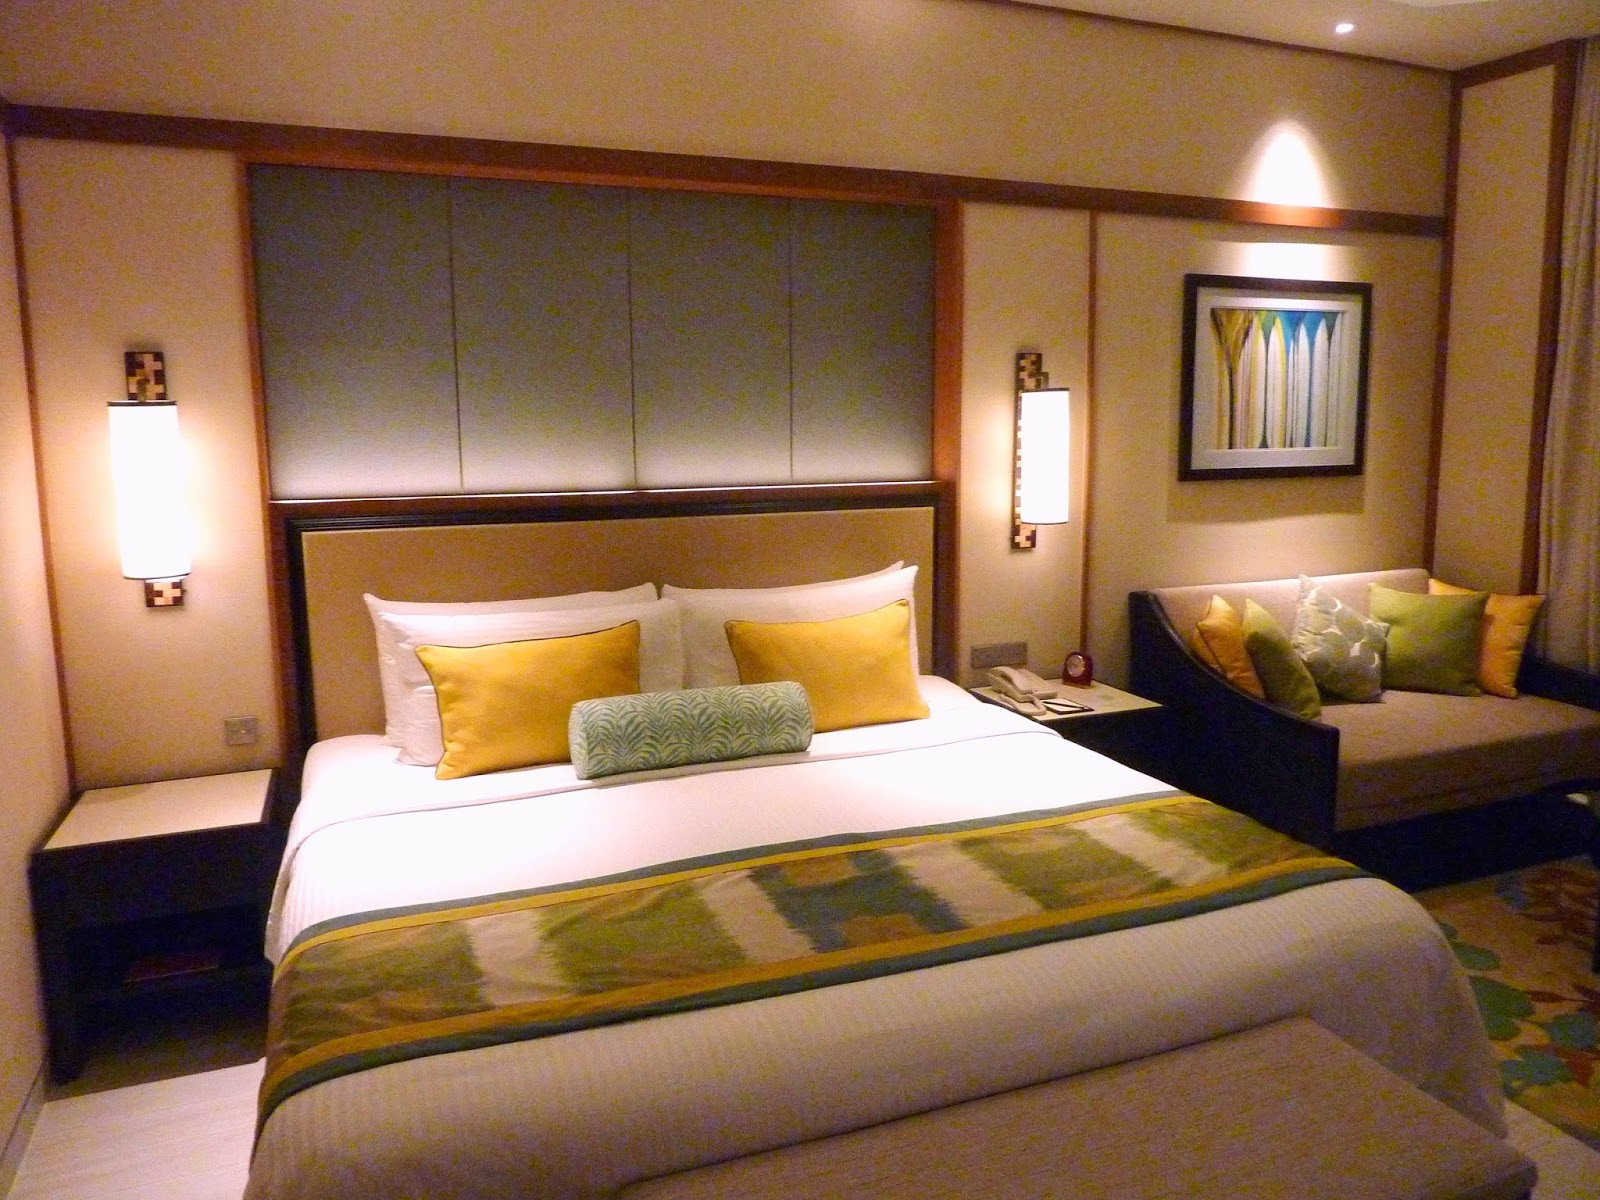 Cozy bedroom at night -  King Sized Bed Or Two Single Beds There Is A Nice Couch Which Doubles As A Cozy Bed For An Extra Guest The Room Rate Is Approximately Rm900 Per Night